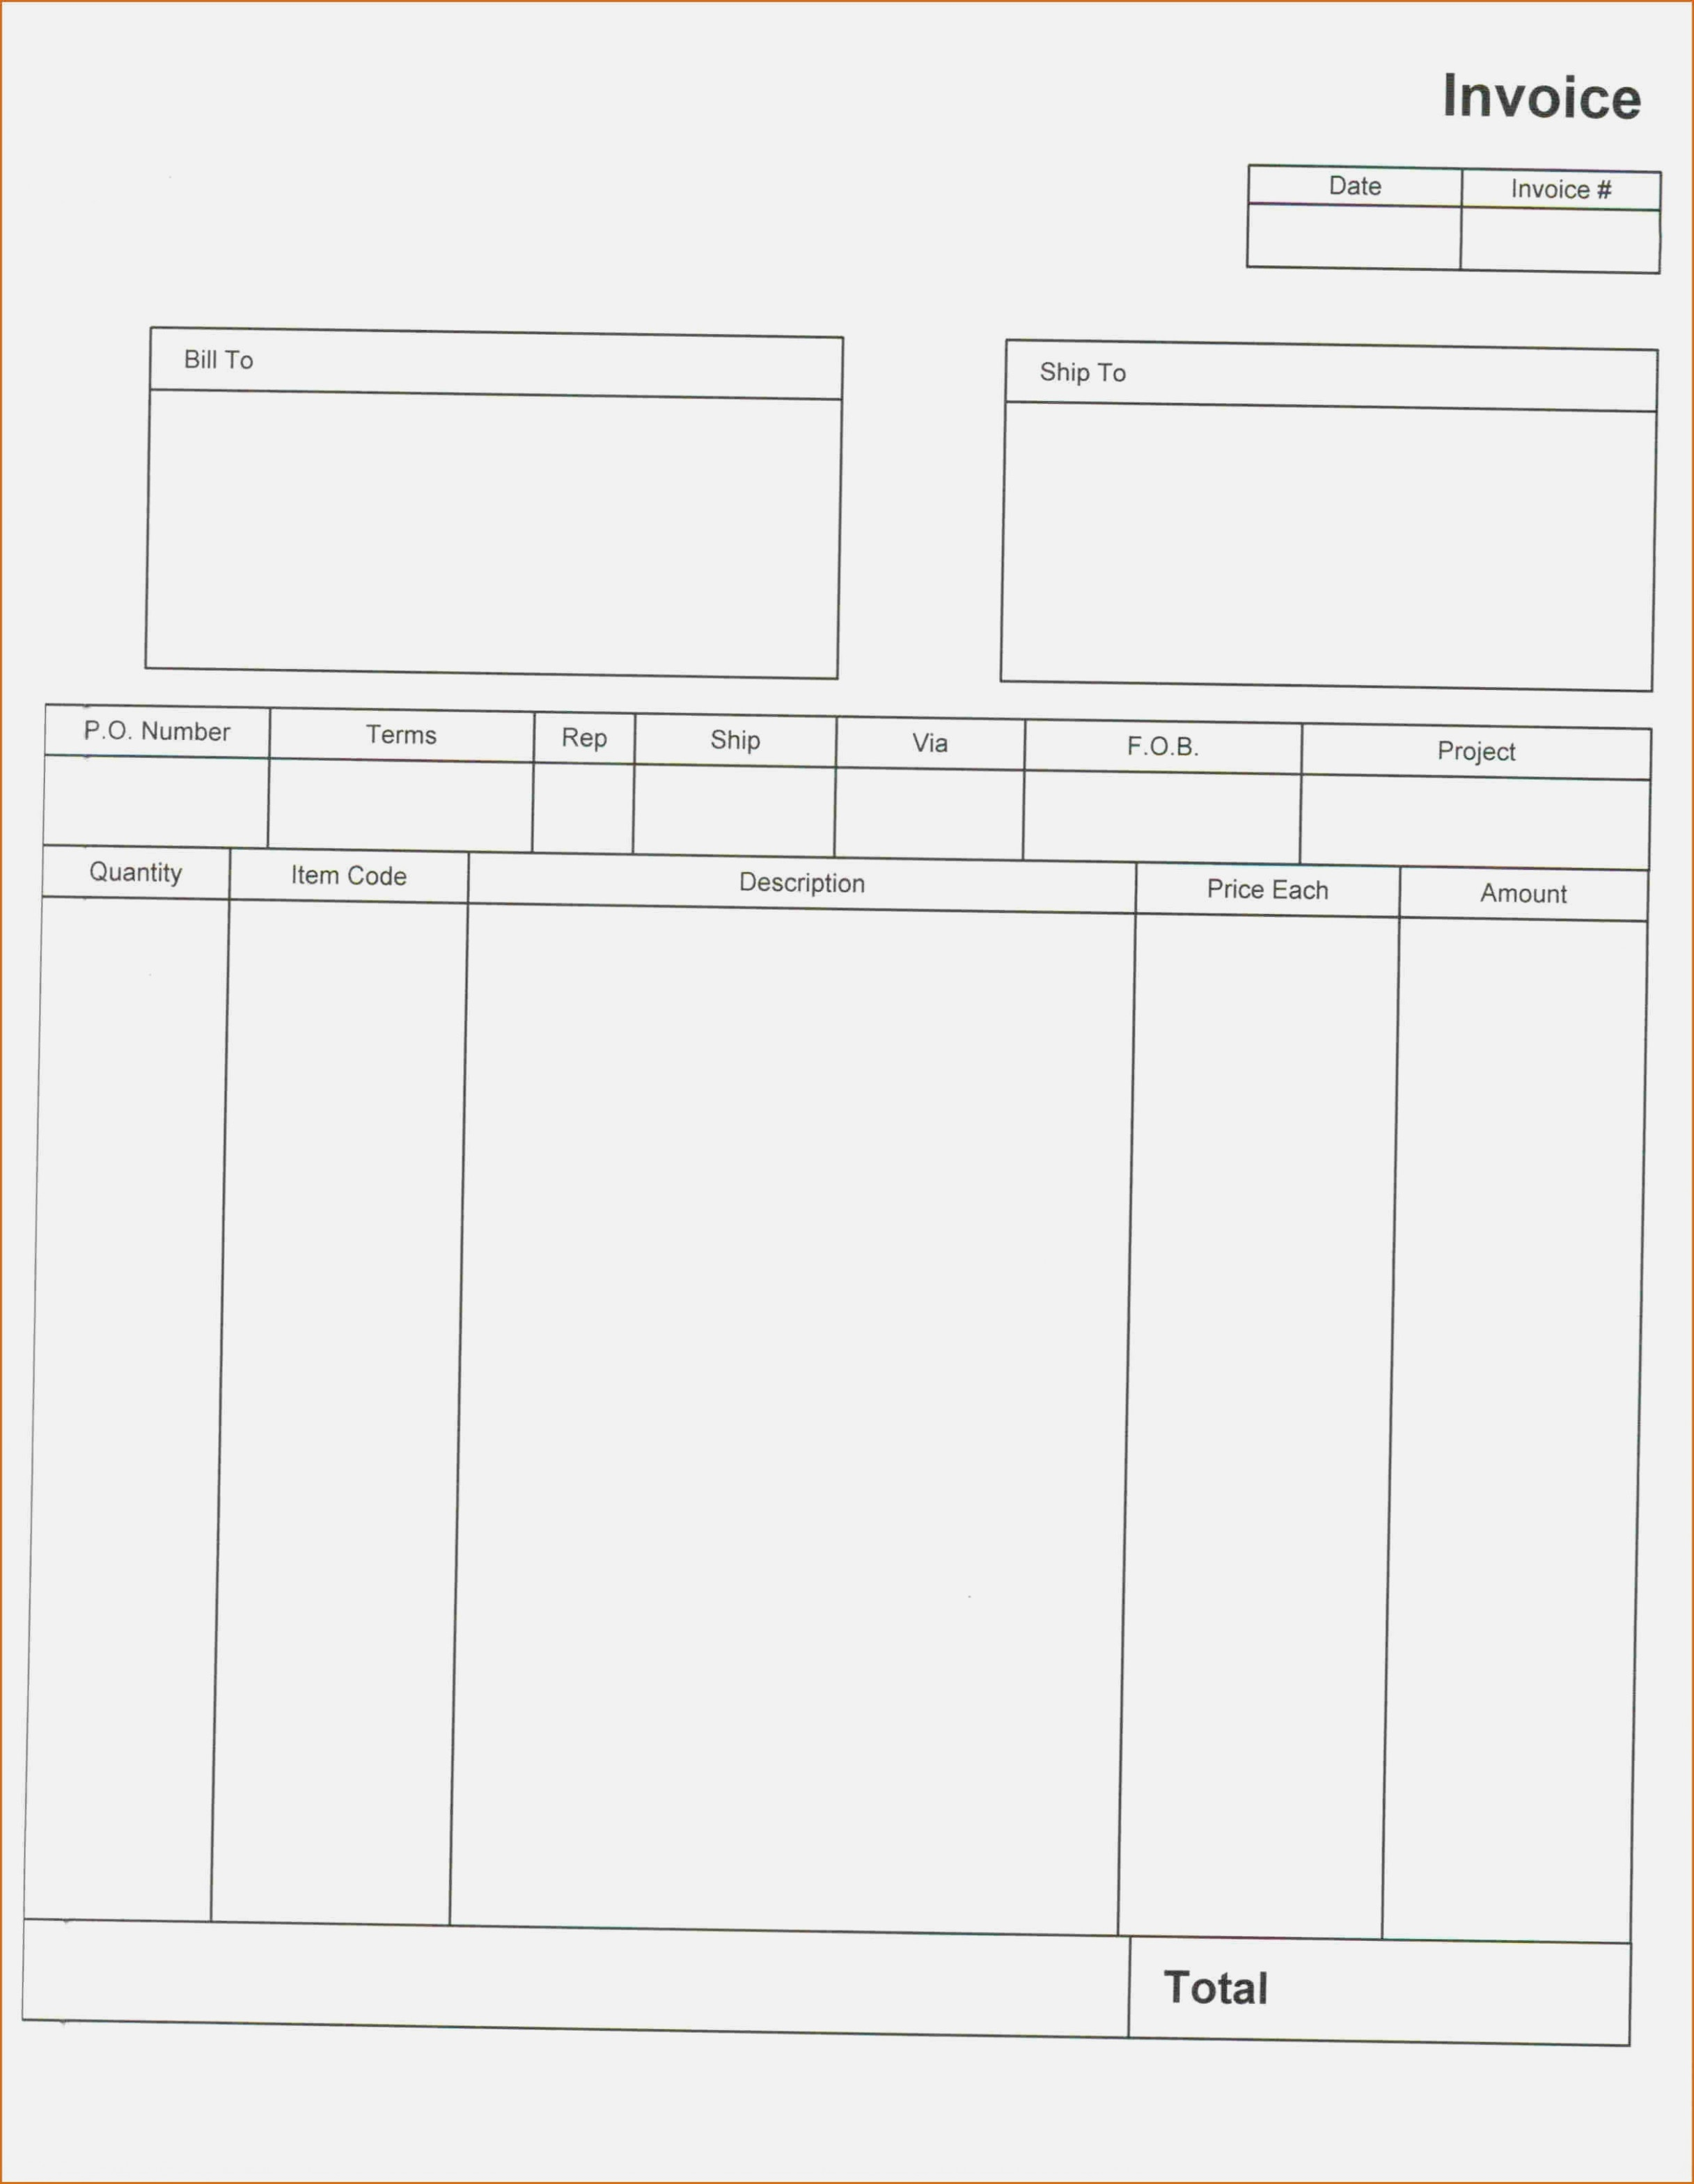 15 Quick Tips For Empty | Realty Executives Mi : Invoice And Resume - Free Printable Blank Invoice